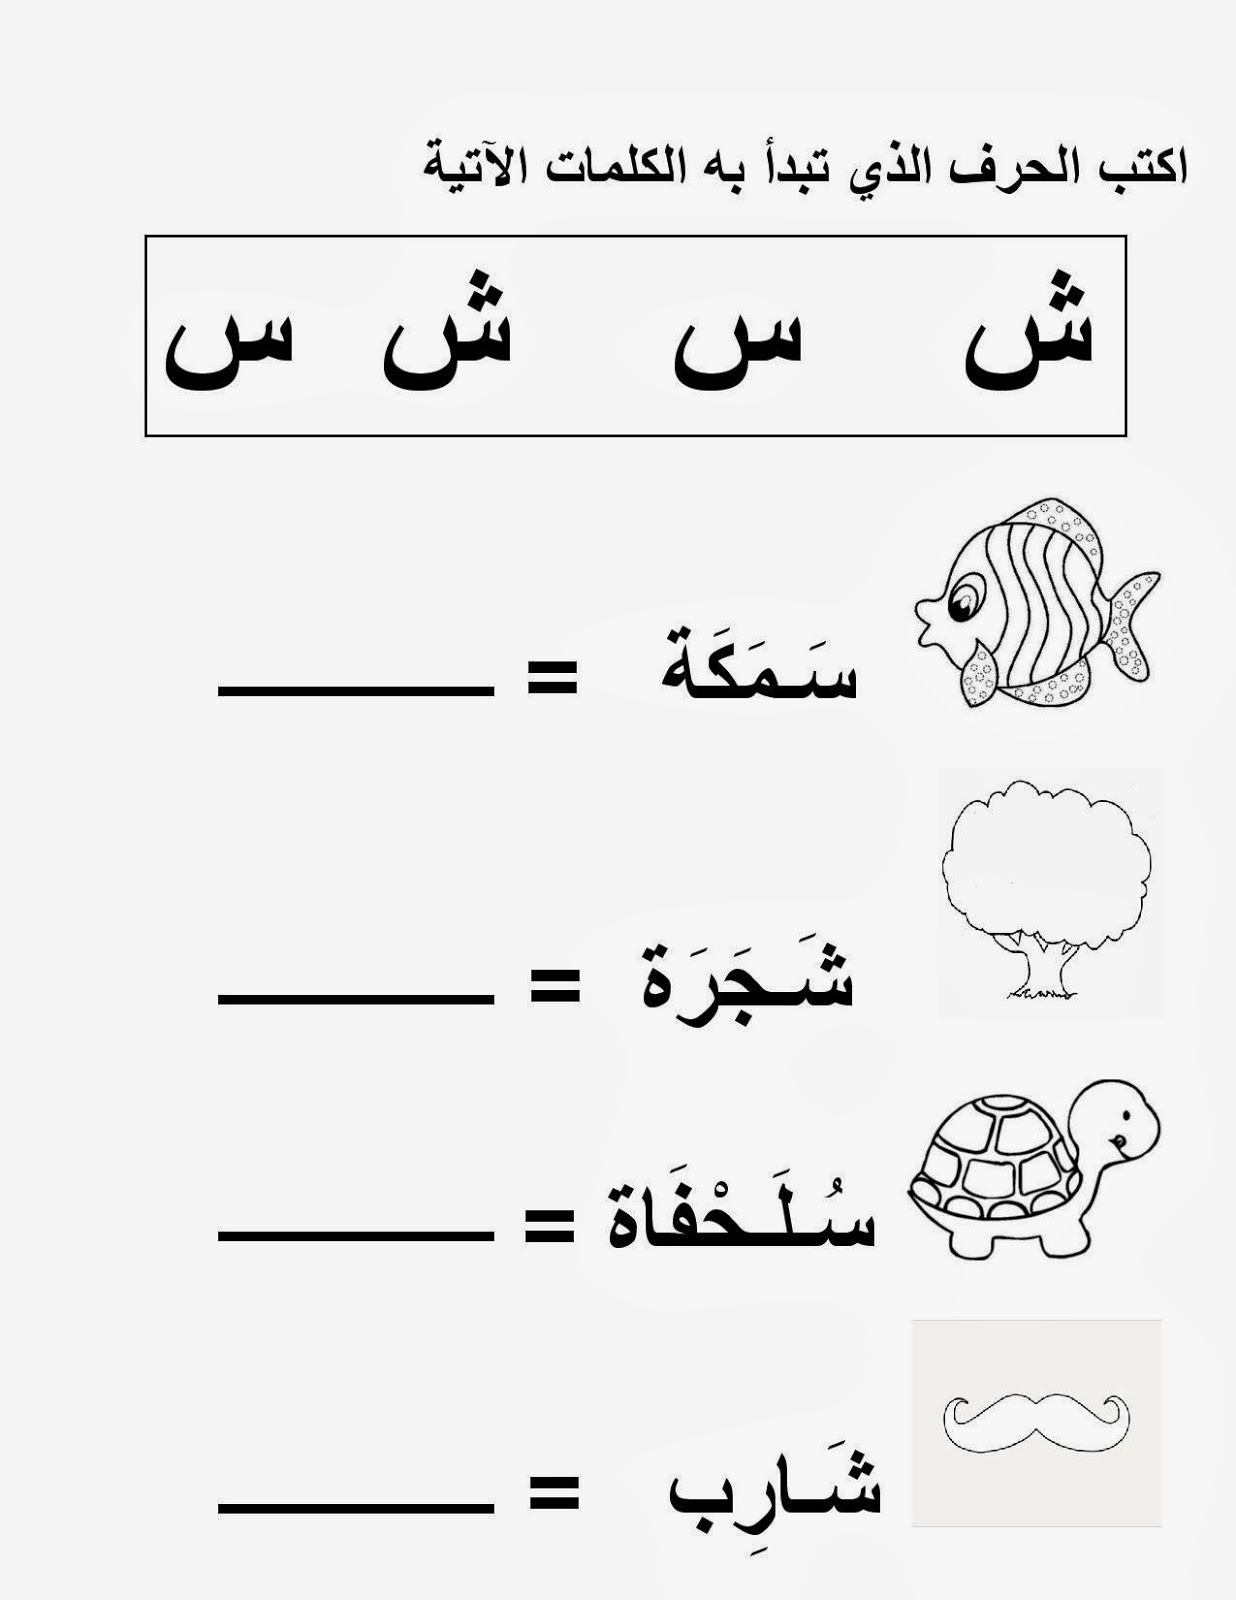 mikahaziq alif ba ta arabic letters worksheet for kids 25th oct. Black Bedroom Furniture Sets. Home Design Ideas